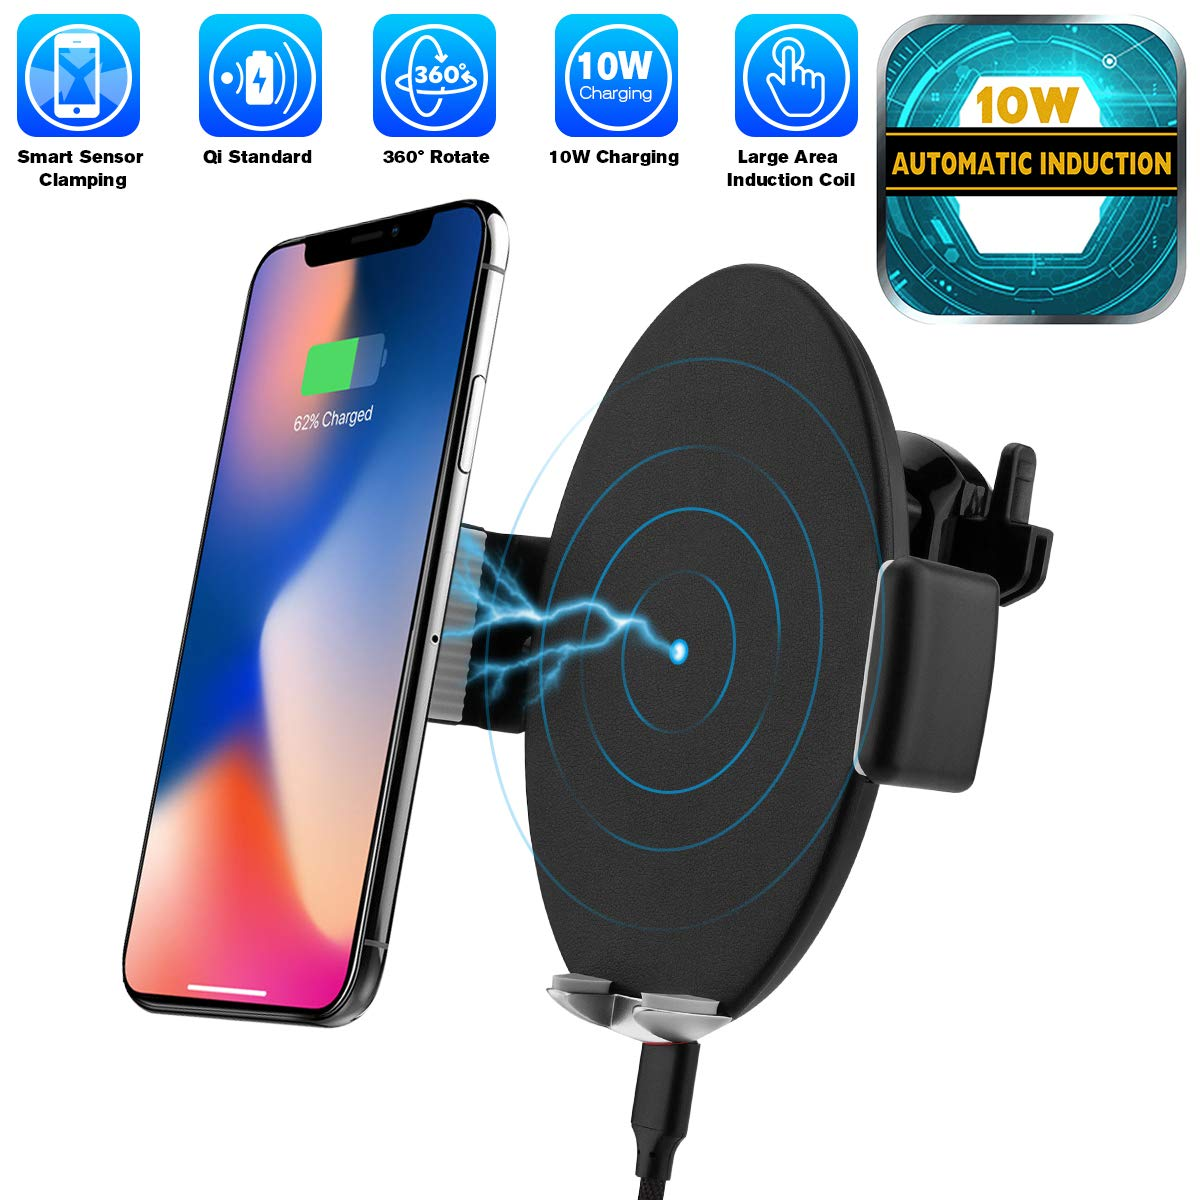 Automatic Sensor Wireless Charger Car Mount, Smart Touch Qi Fast Wireless Charging Air Vent Car Phone Holder for i Phone XS MAX/XR/XS/X/8/8 Plus Samsung Galaxy S9/8/7/Note 8 All Qi-Enabled Phones OCTING